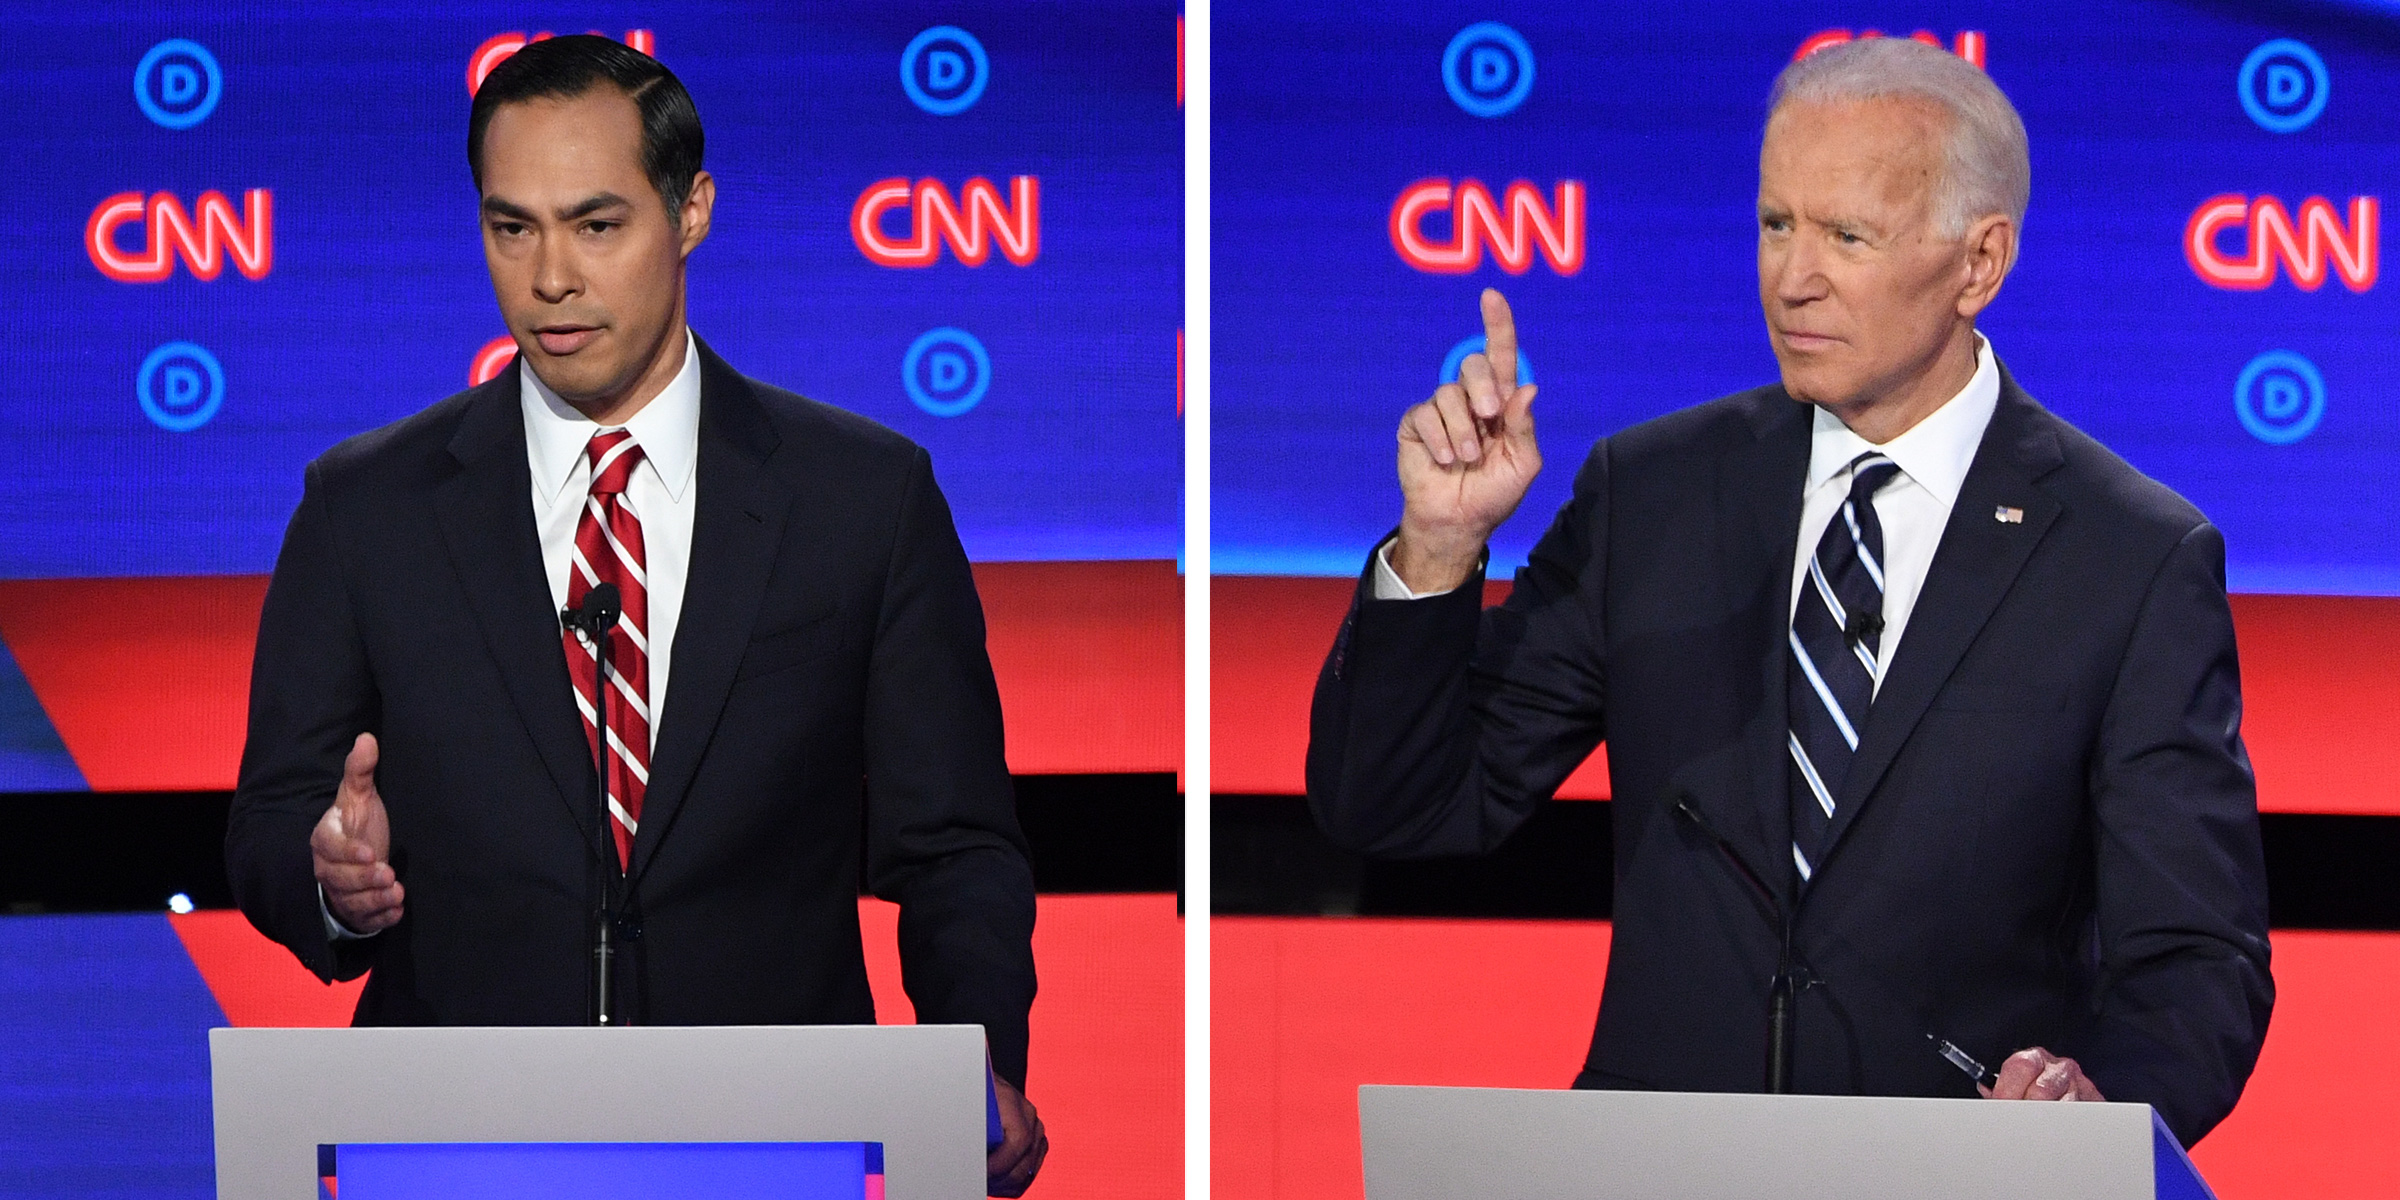 Democratic presidential hopefuls (L-R) Former US Secretary of Housing and Urban Development Julian Castro and Former Vice President Joe Biden during the second round of the second Democratic primary debate of the 2020 presidential campaign season hosted by CNN at the Fox Theatre in Detroit, Michigan on July 31, 2019.